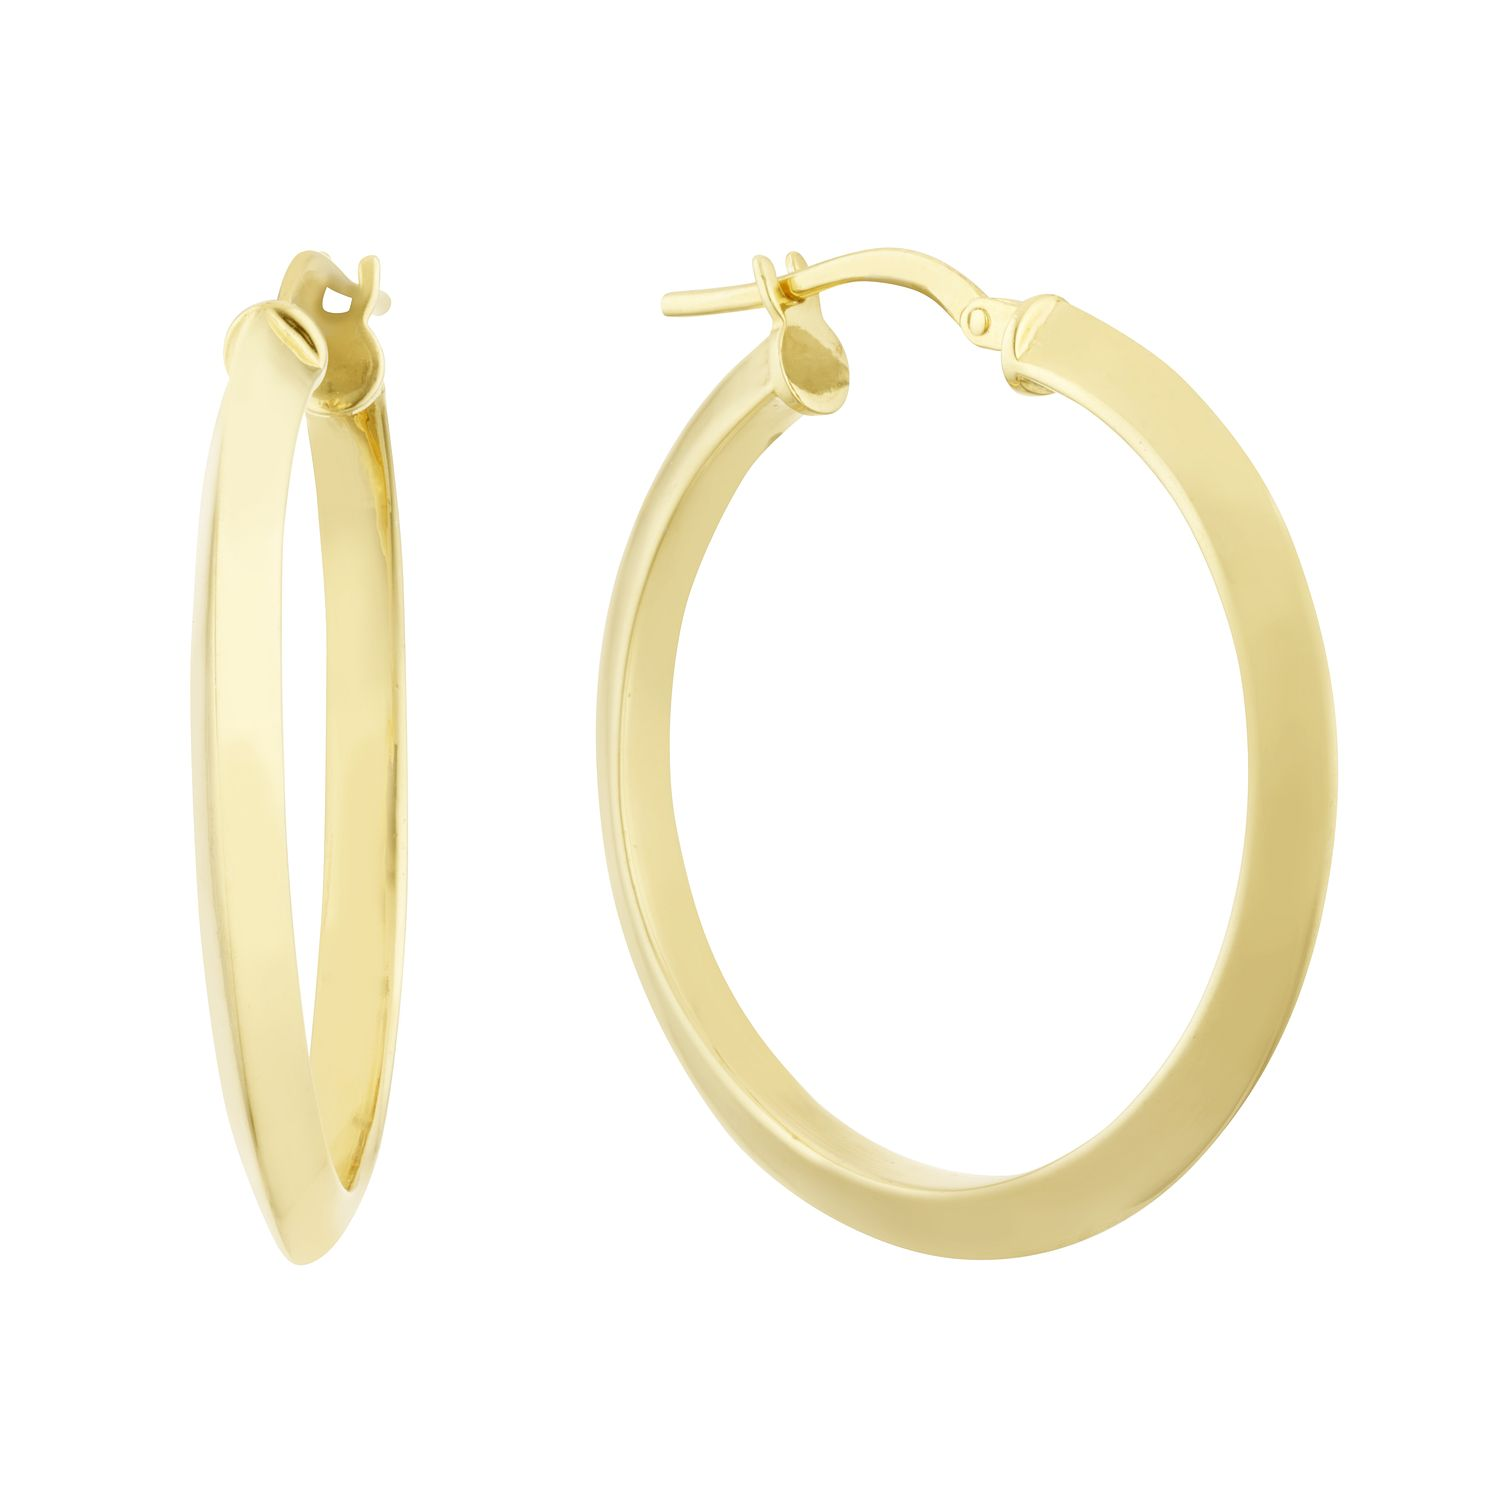 Together Silver & 9ct Bonded Yellow Gold 25mm Hoop Earrings - Product number 3157385